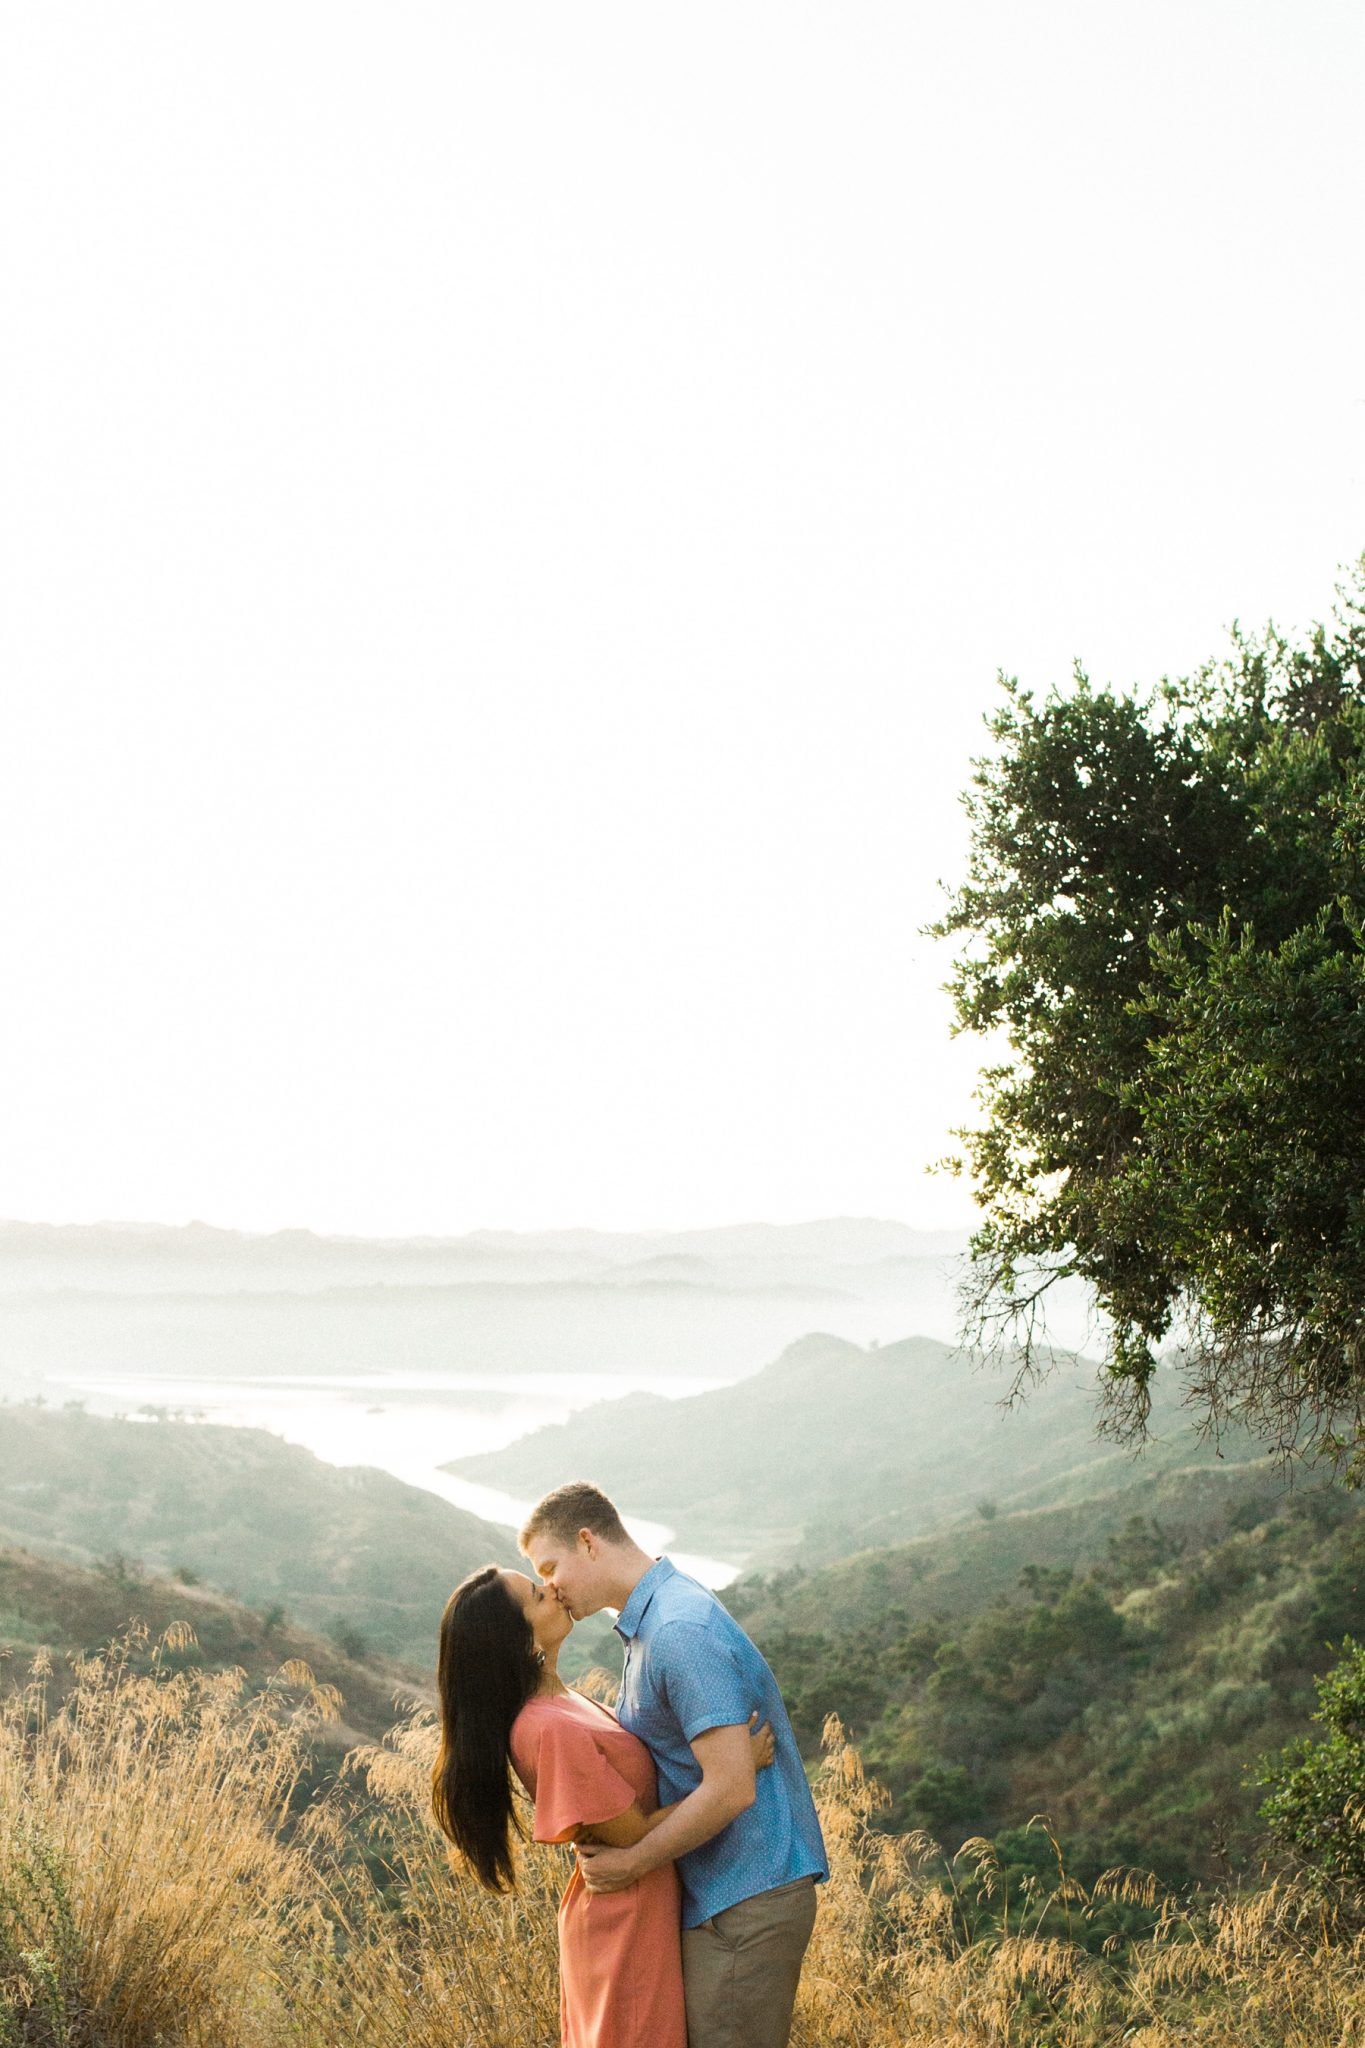 Engagement session locations in Santa Barbara